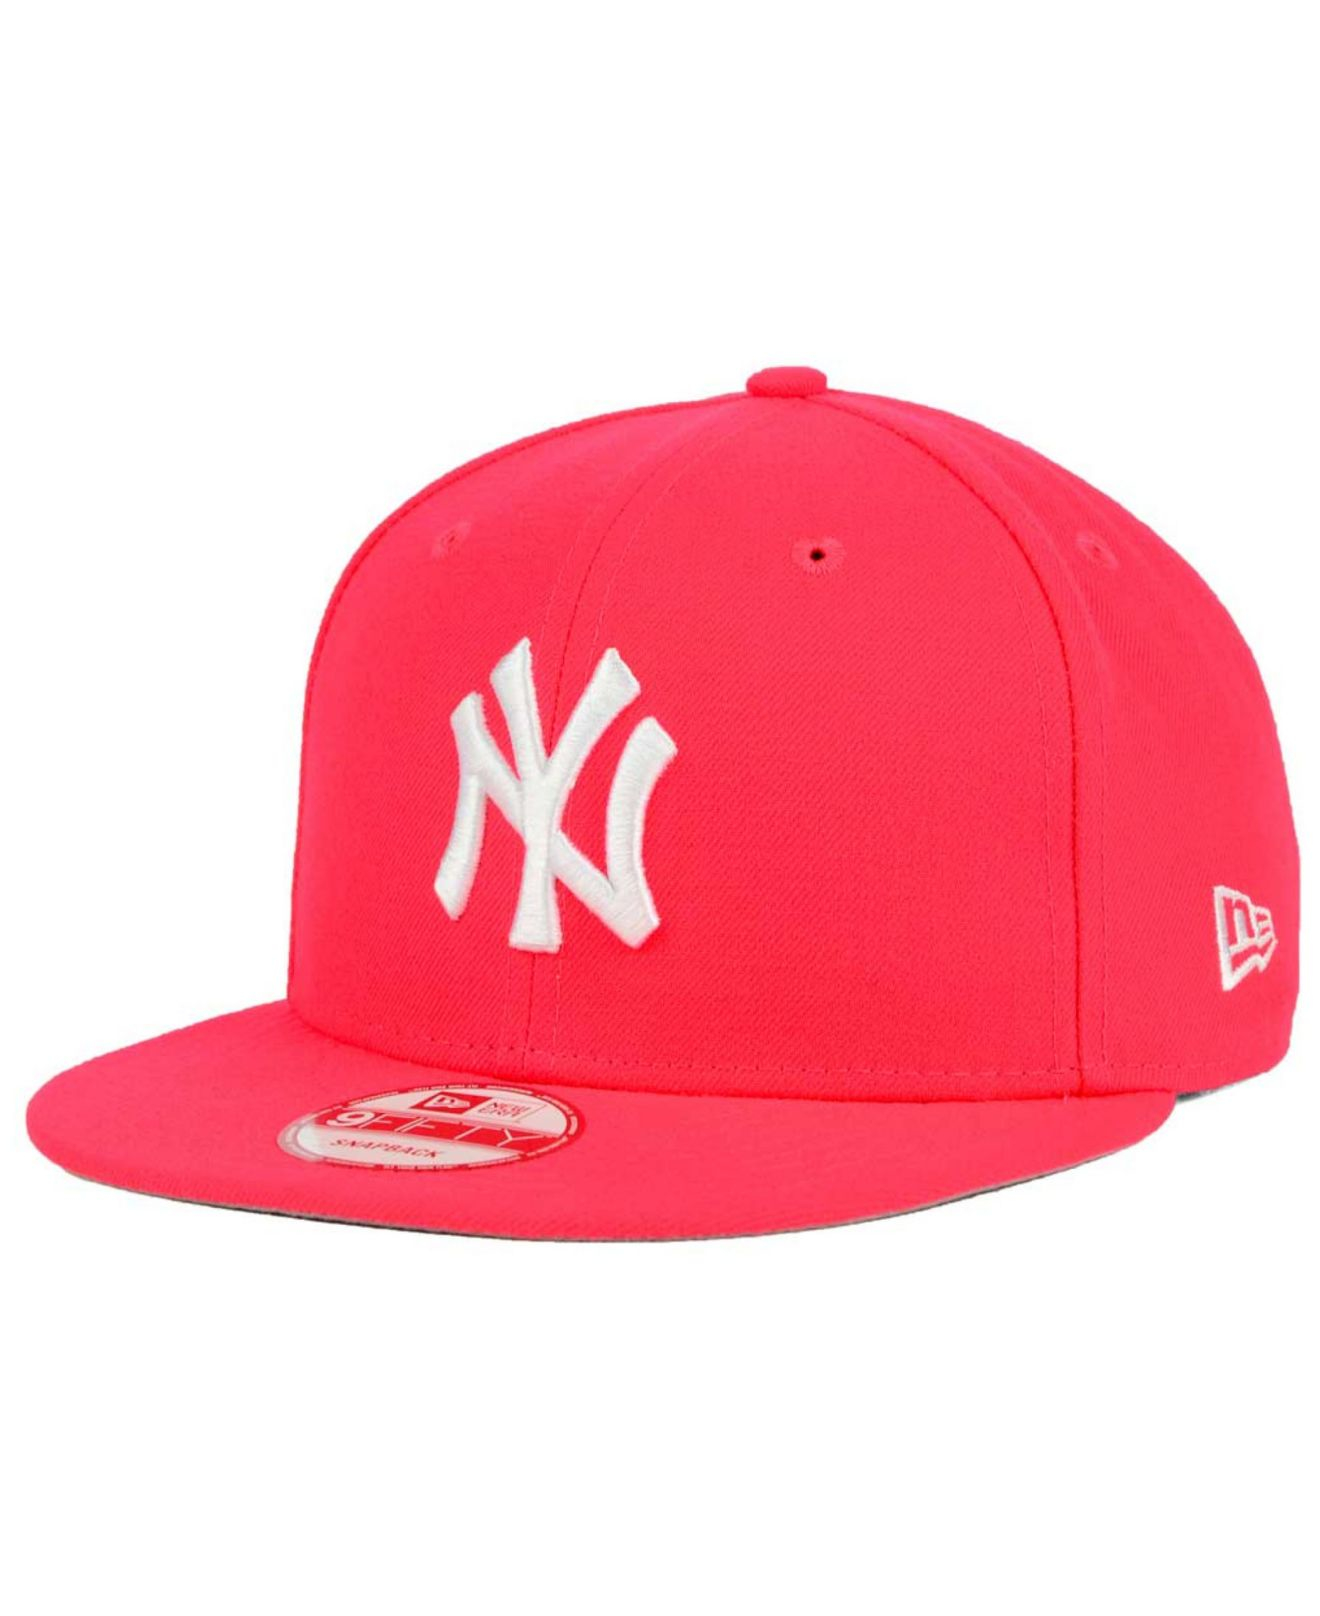 ba0c53e7689 cheap washington nationals red mlb wool classic new era 20584275 59fifty cap  af2e7 3d215  where can i buy lyst ktz new york yankees c dub 9fifty  snapback ...